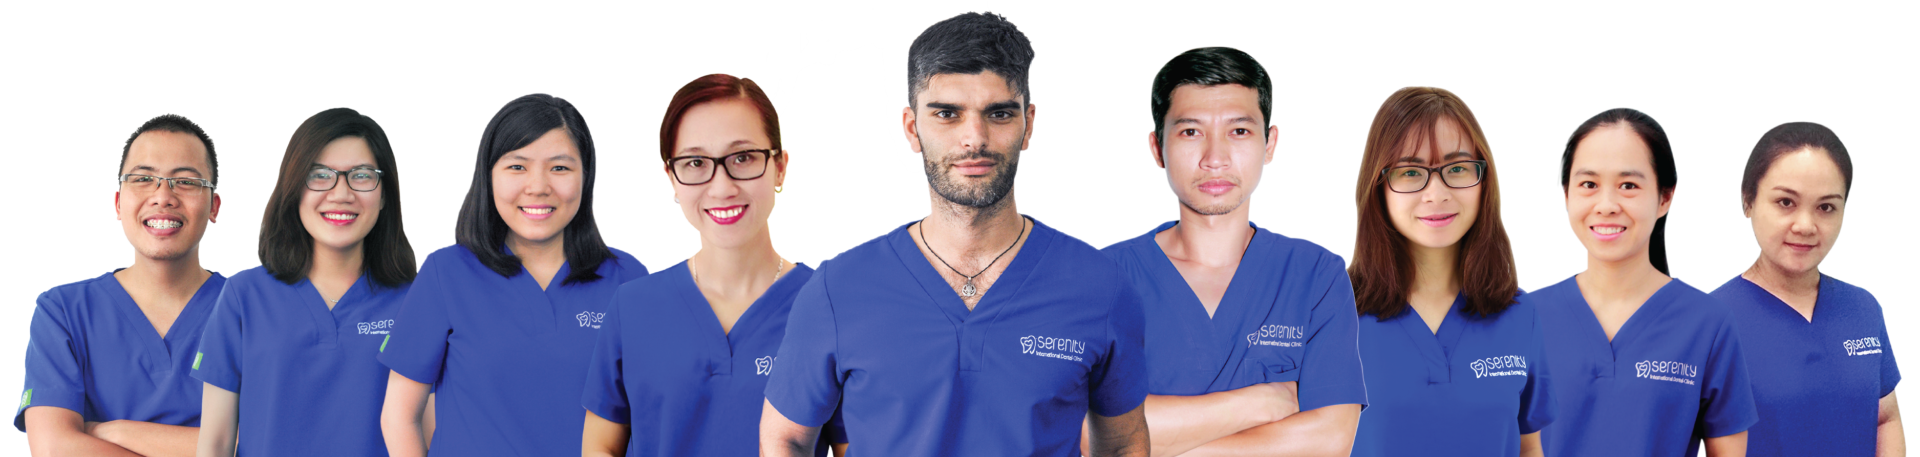 Serenity International Dental Clinic Vietnam doctors